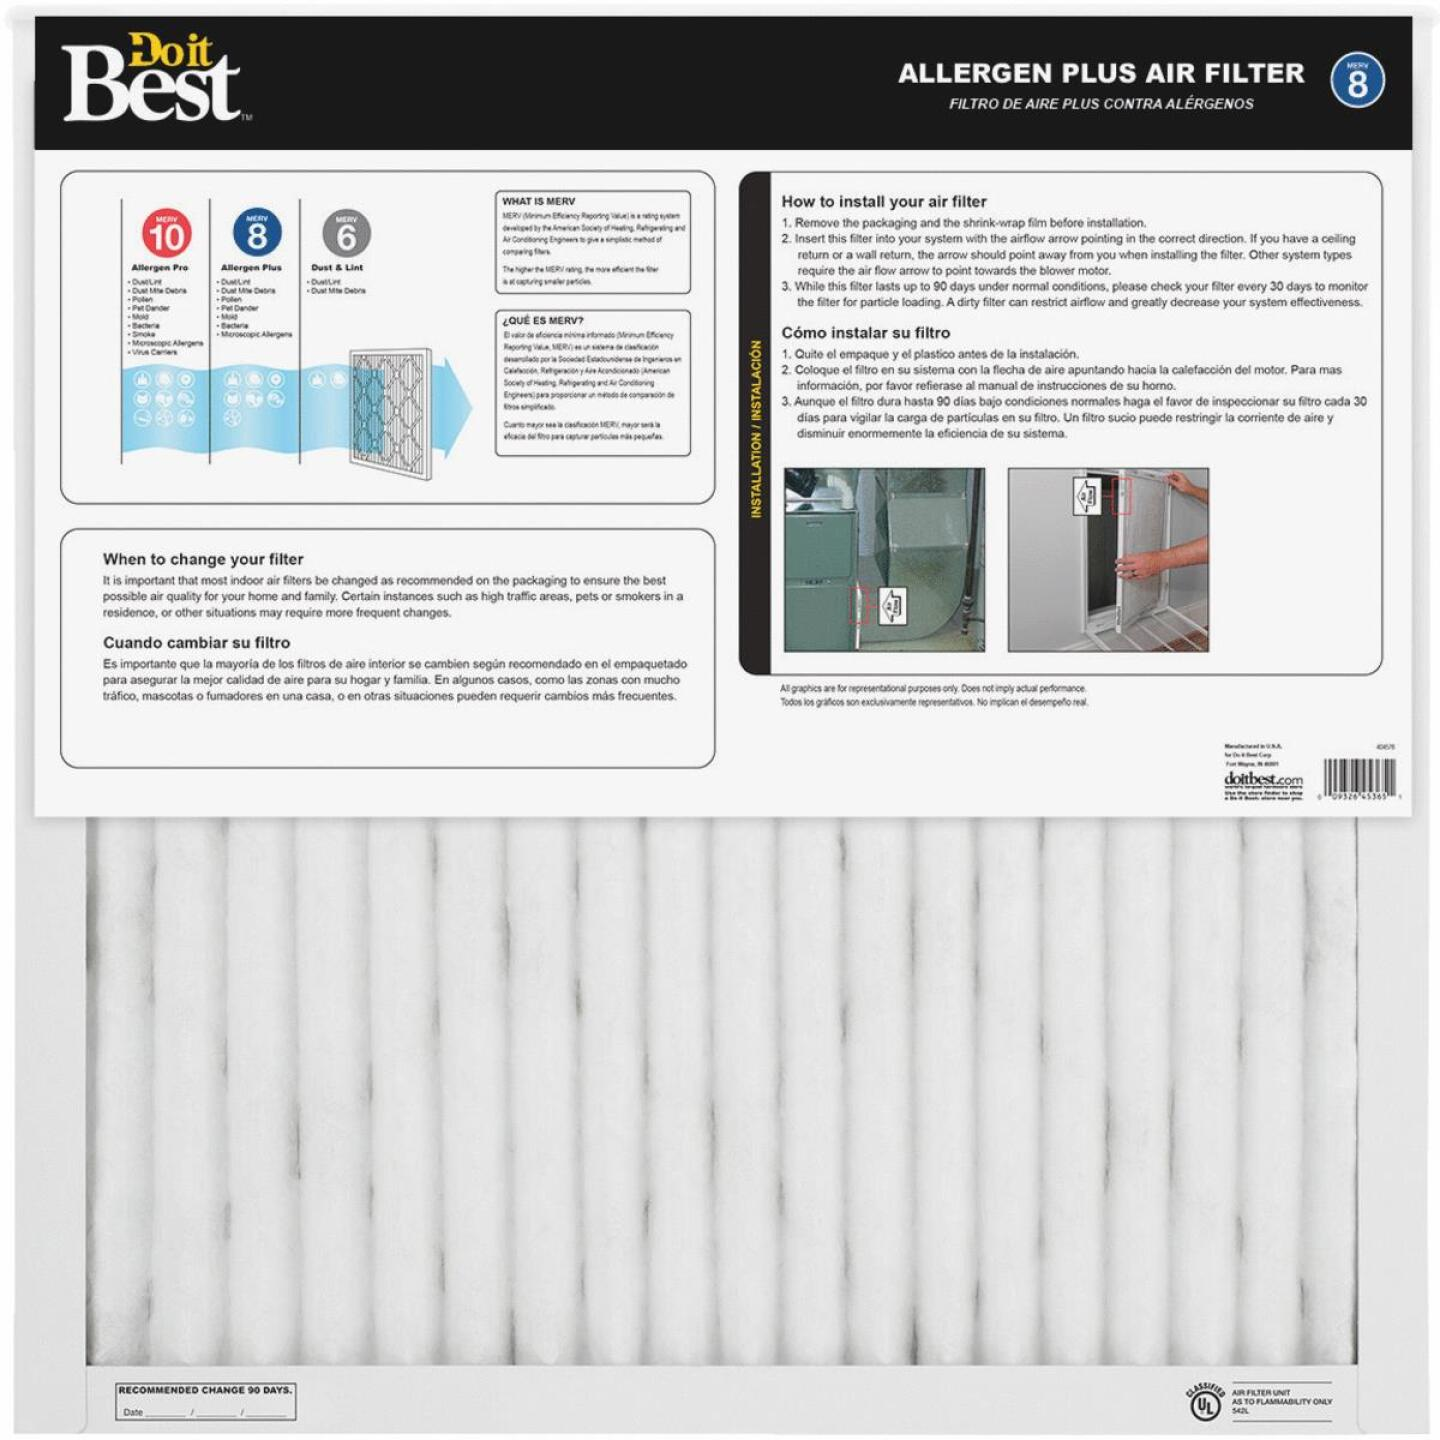 Do it Best 20 In. x 25 In. x 1 In. Allergen Plus MERV 8 Furnace Filter Image 2